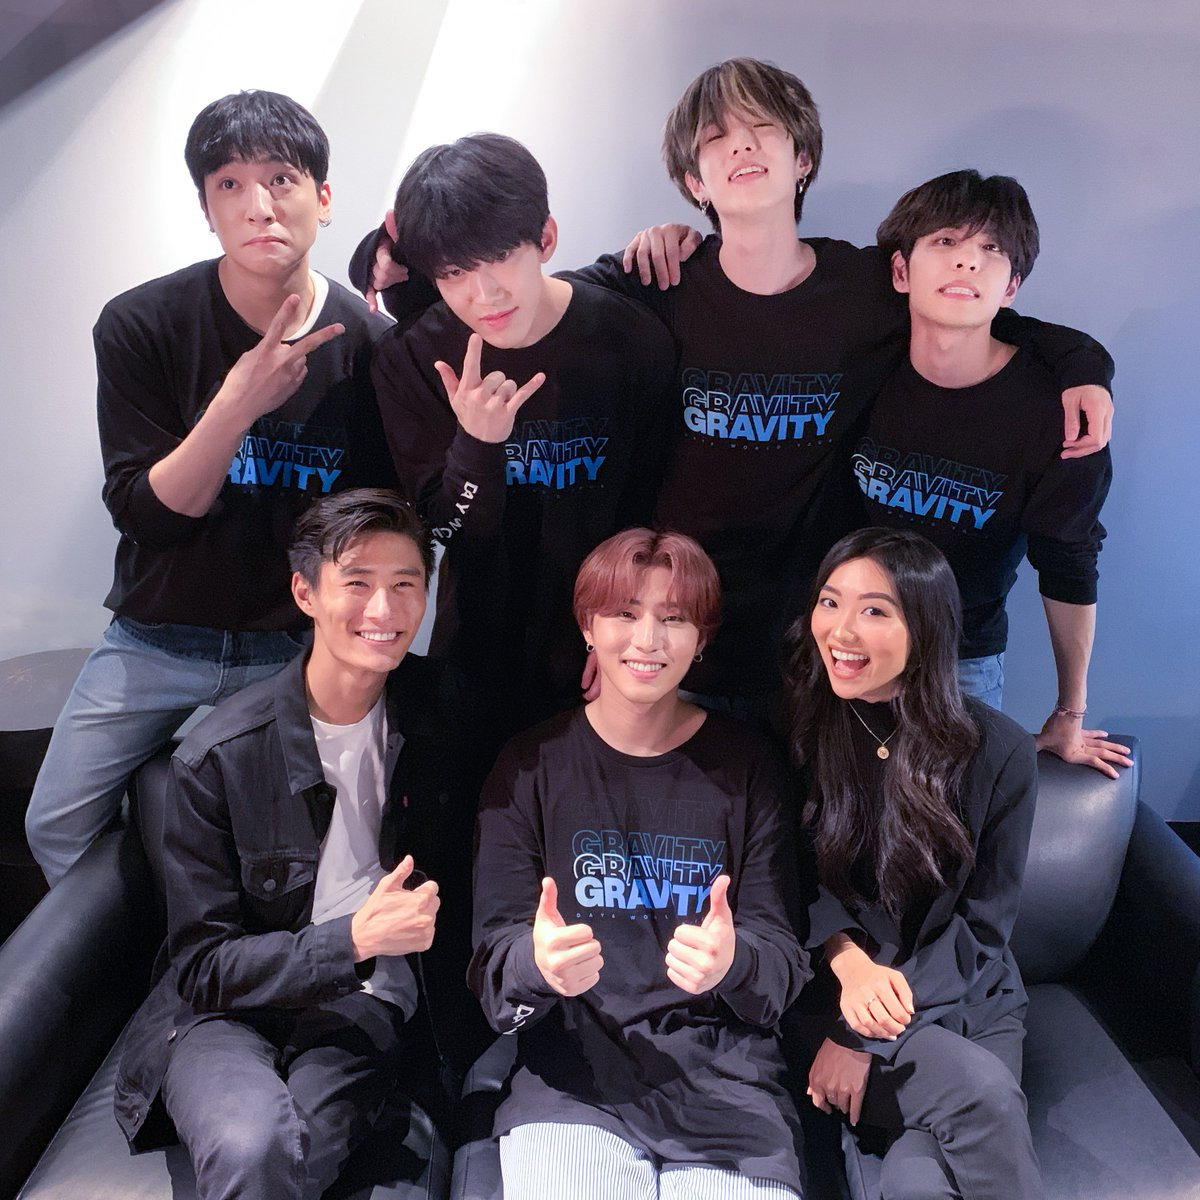 Congrats to the #DAY6 boys on the new album & MV release! 🥳🥂 Saving us from becoming Zombies during quarantine 😵🧟♂️ BRILLIANT as always!! 🥺👏🏼 ➡️ youtu.be/k8gx-C7GCGU ⬅️ Throwback to new co-ed band BLT 🥪 (Bacon, Lettuce, Tomato) tour in NYC!! 😂😋 #DAY6_Zombie #The_Demon